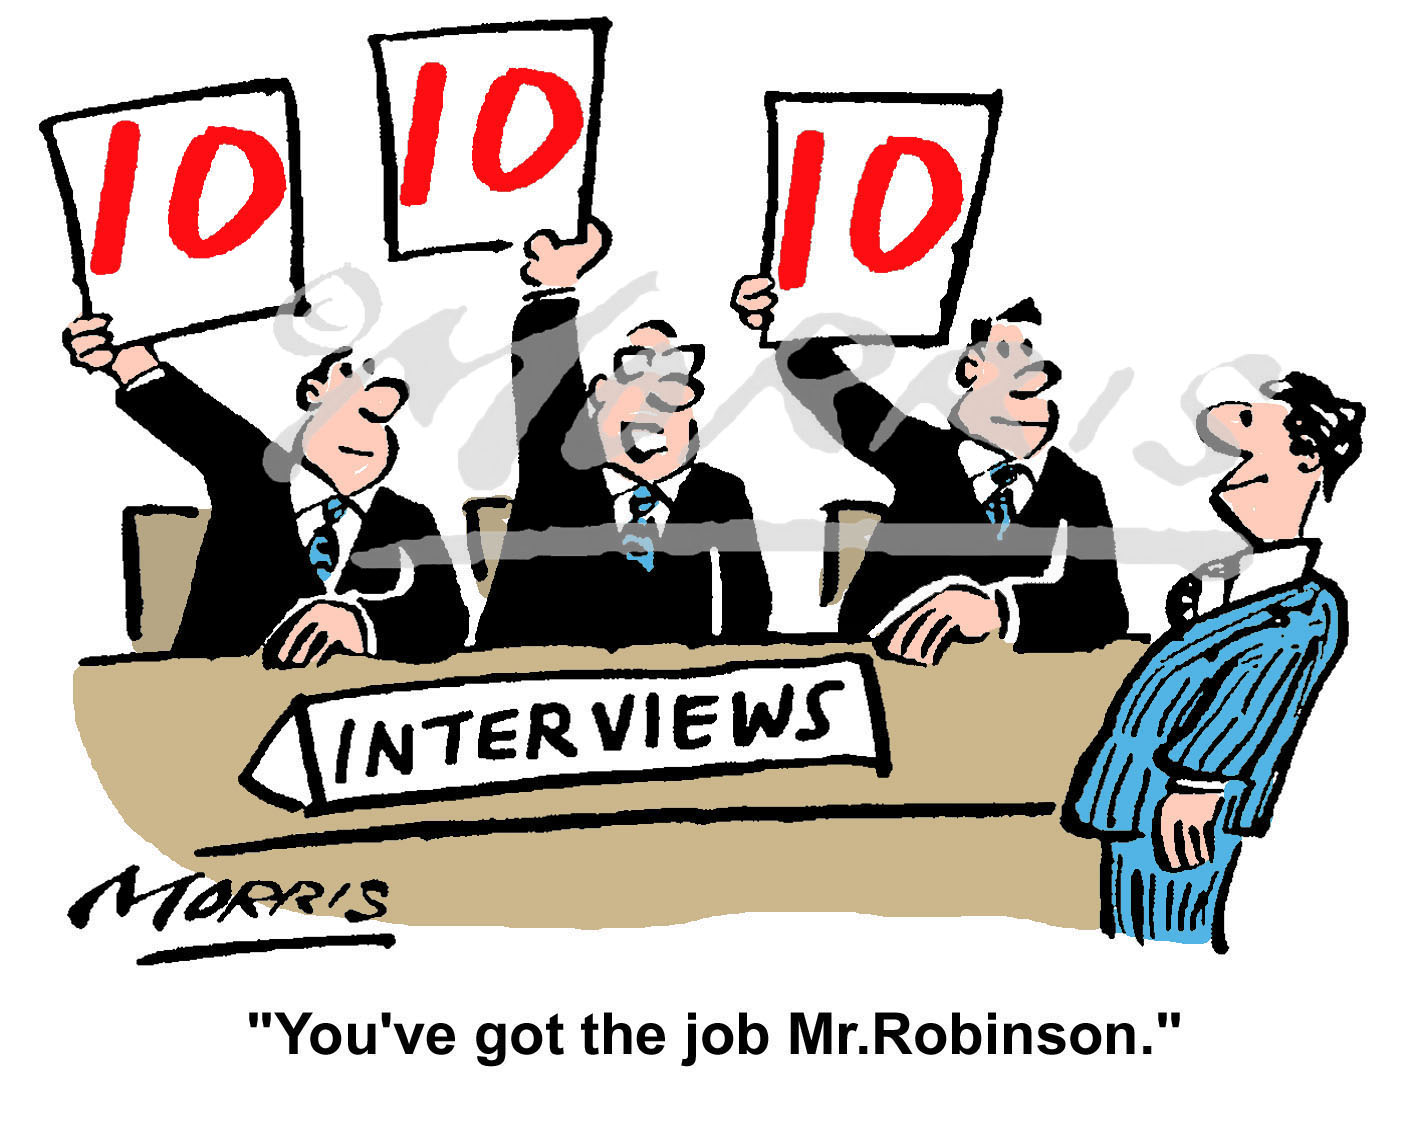 Recruitment, Hiring and Interview business cartoon – Ref: 6221col